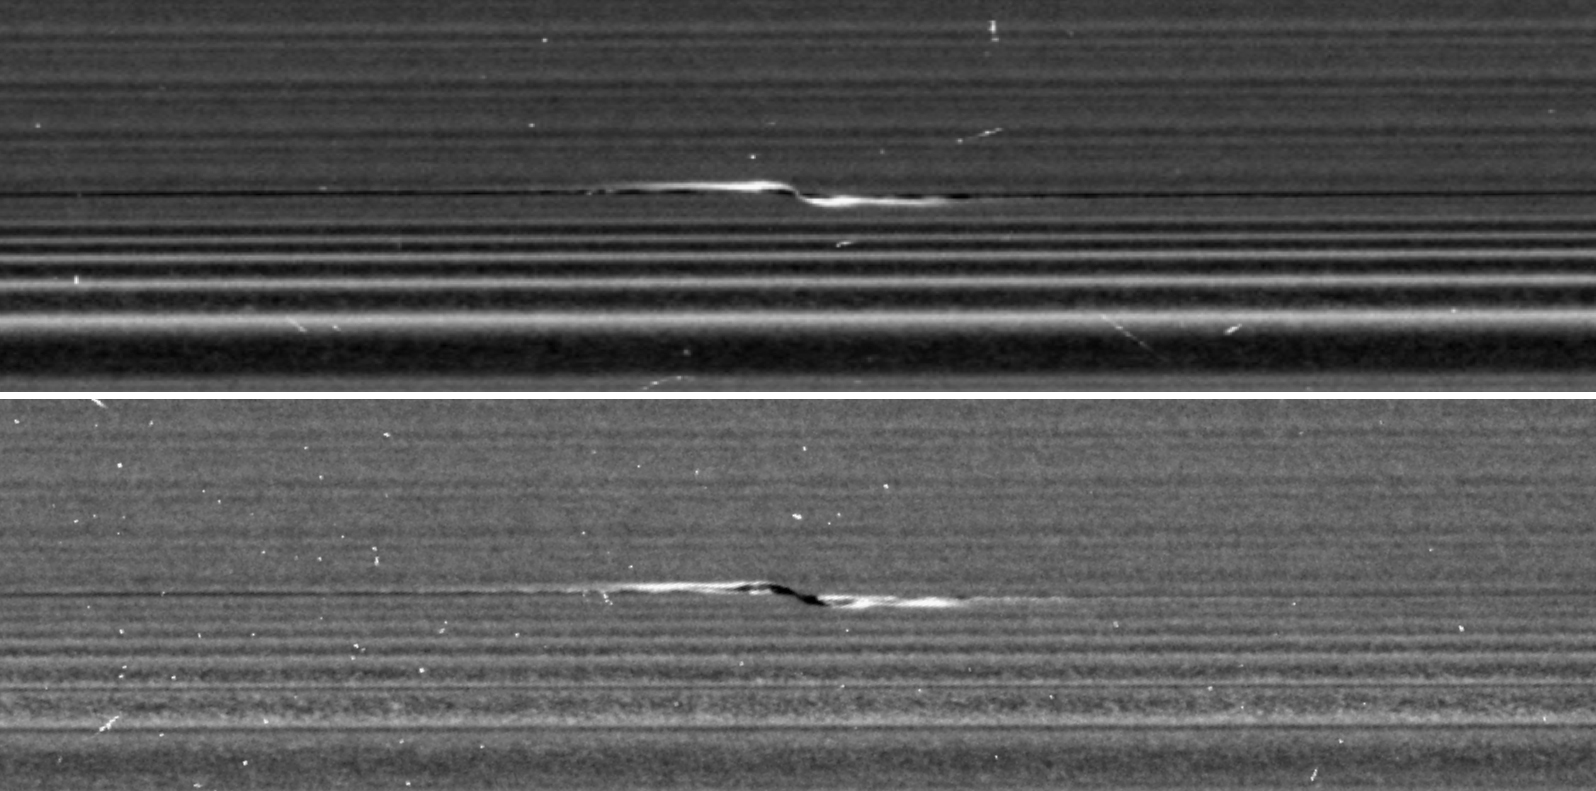 Propellers in Saturn's rings